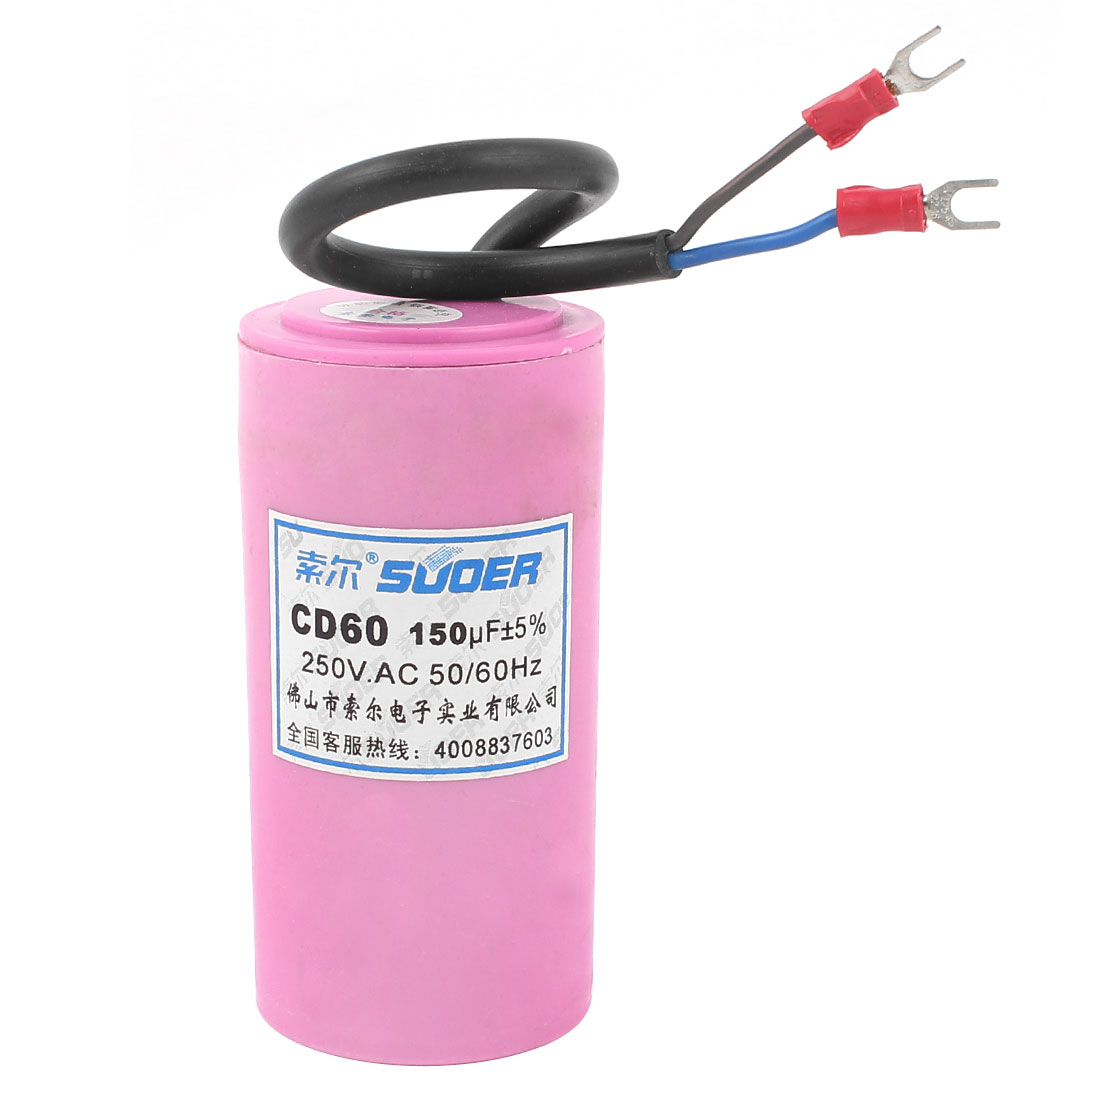 AC 250V 150uF 50/60Hz Wire Lead Motor Start Capacitor Pink CD60